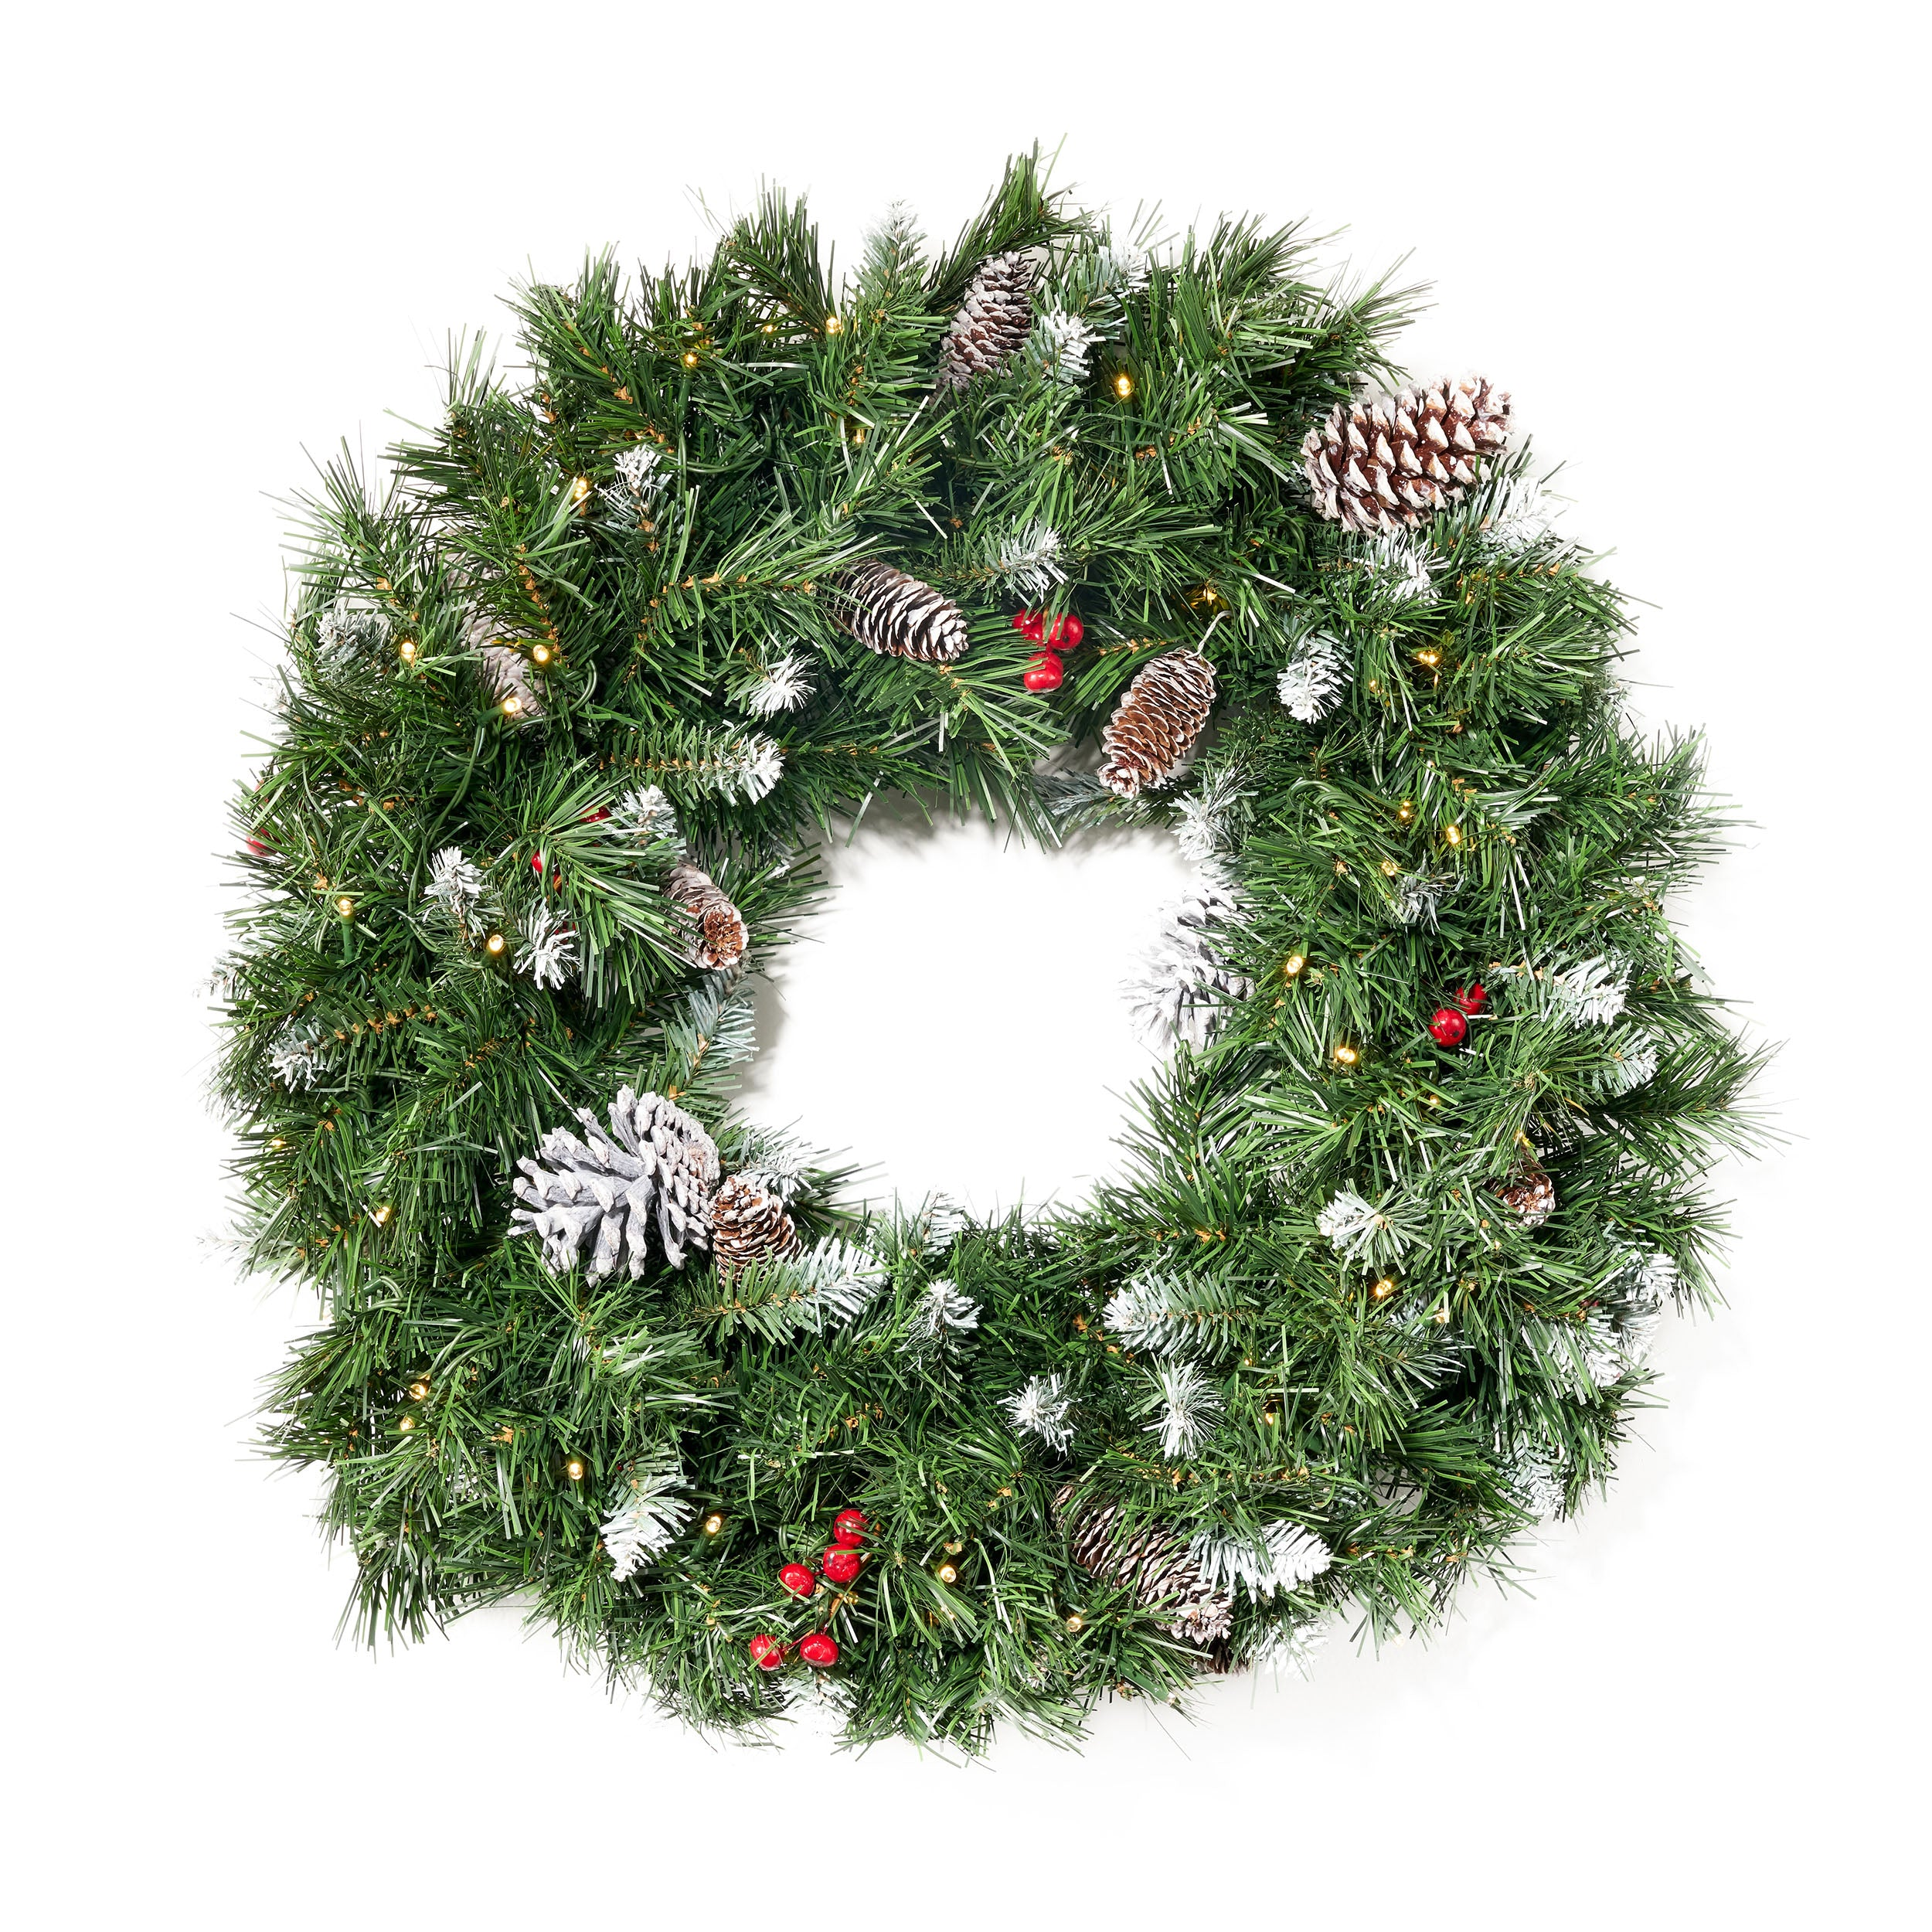 24 Mixed Spruce Pre Lit Warm White LED Artificial Christmas Wreath with Frosted Branches Red Berries and Pinecones